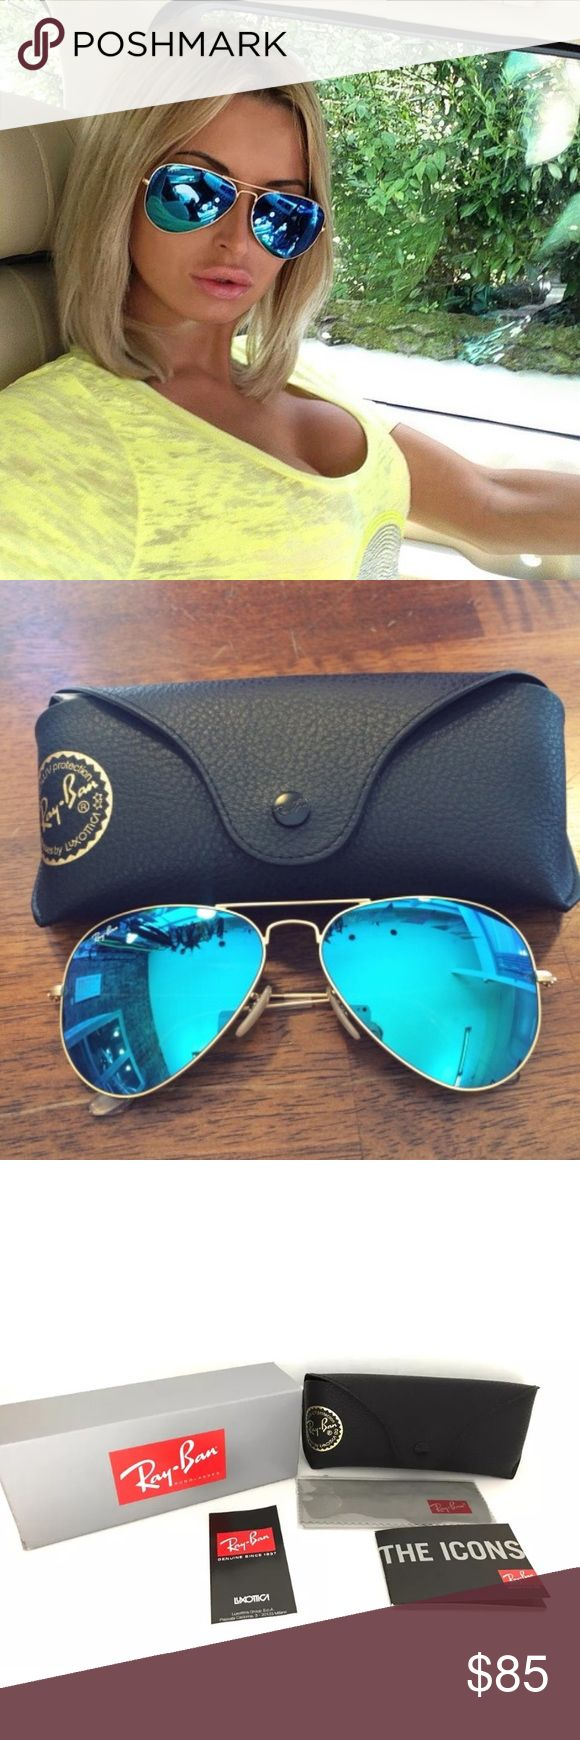 100%AUTHENTIC ray-ban aviator flash blue lens 58MM Model code: Rb3025 112/17 58-14  Frame material: Metal Frame color: Matte Gold Lenses: Blue Mirror Shape: Aviator Size lens-bridge: 58-14 Temple Length: 135mm Technology: Mirror MADE IN ITALY FULL PACKAGING FROM MANUFACTURER. Ray-Ban Accessories Sunglasses